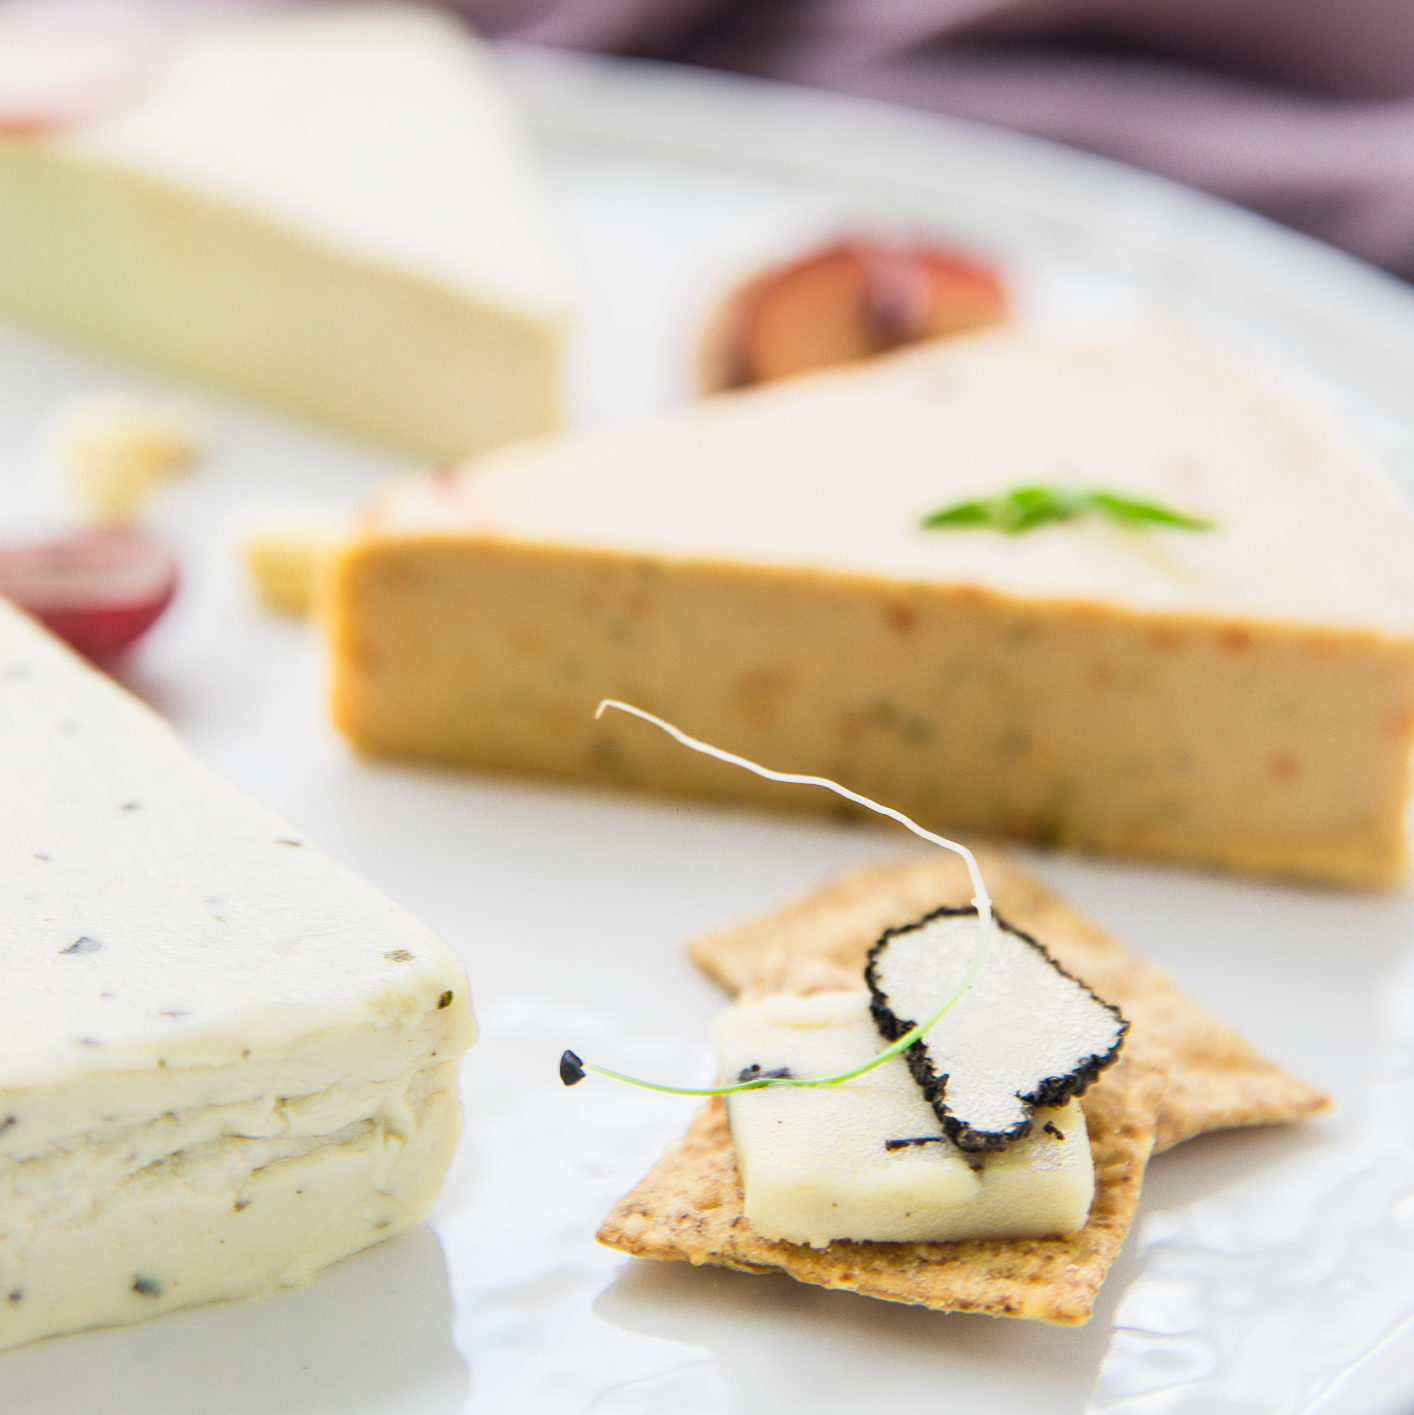 D'free cashew cheese